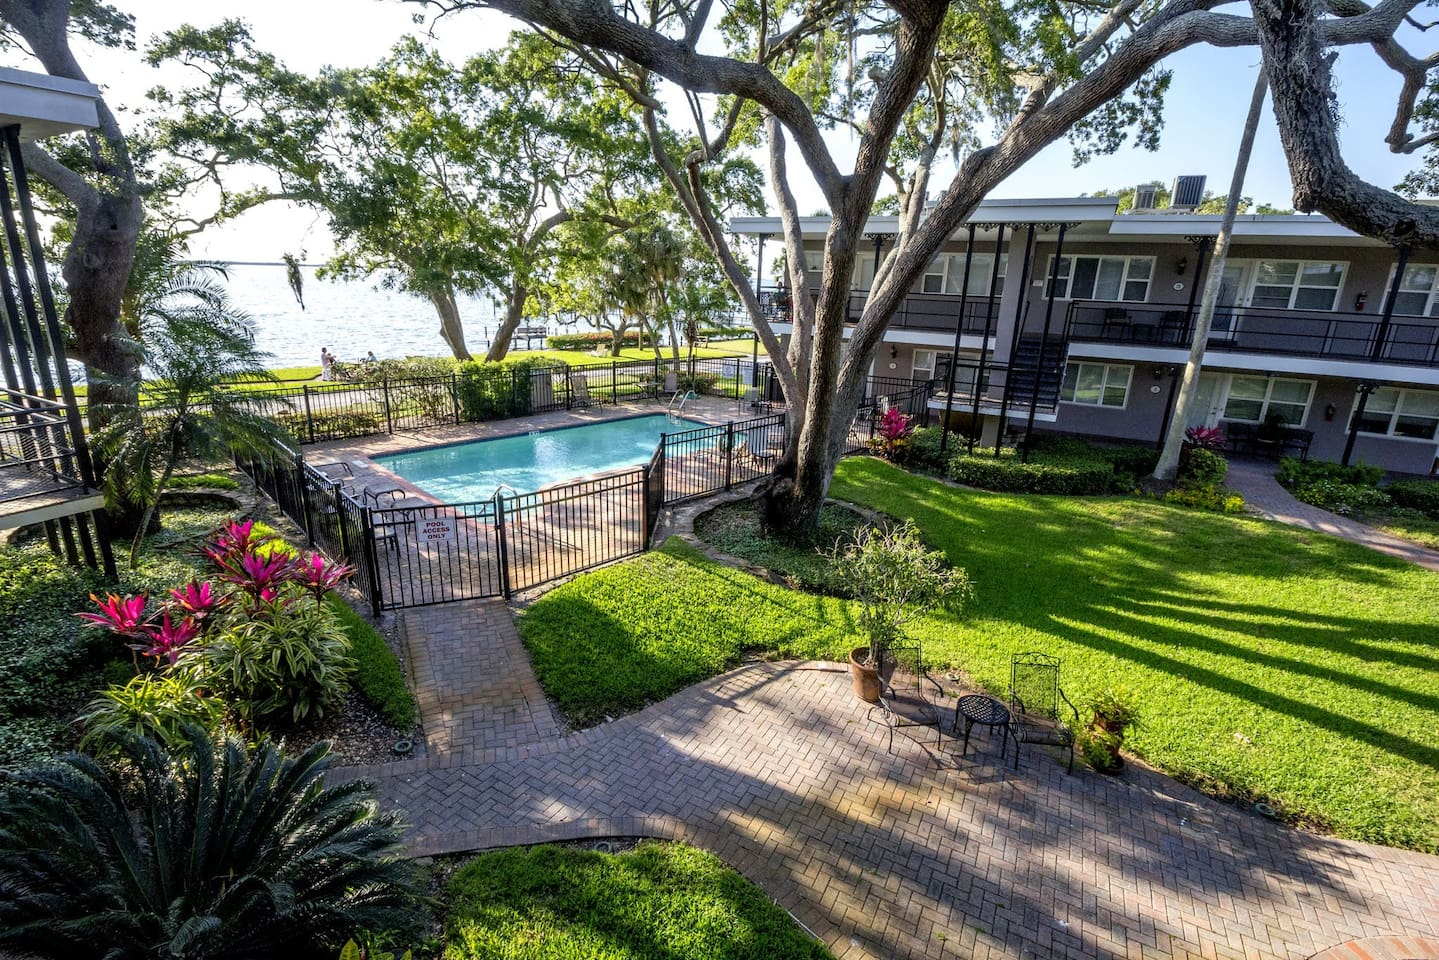 Swimming pool in peaceful beautiful courtyard surrounded by the condo units...steps away from intercoastal where there are two old florida concrete mosaic tables to sit by the water